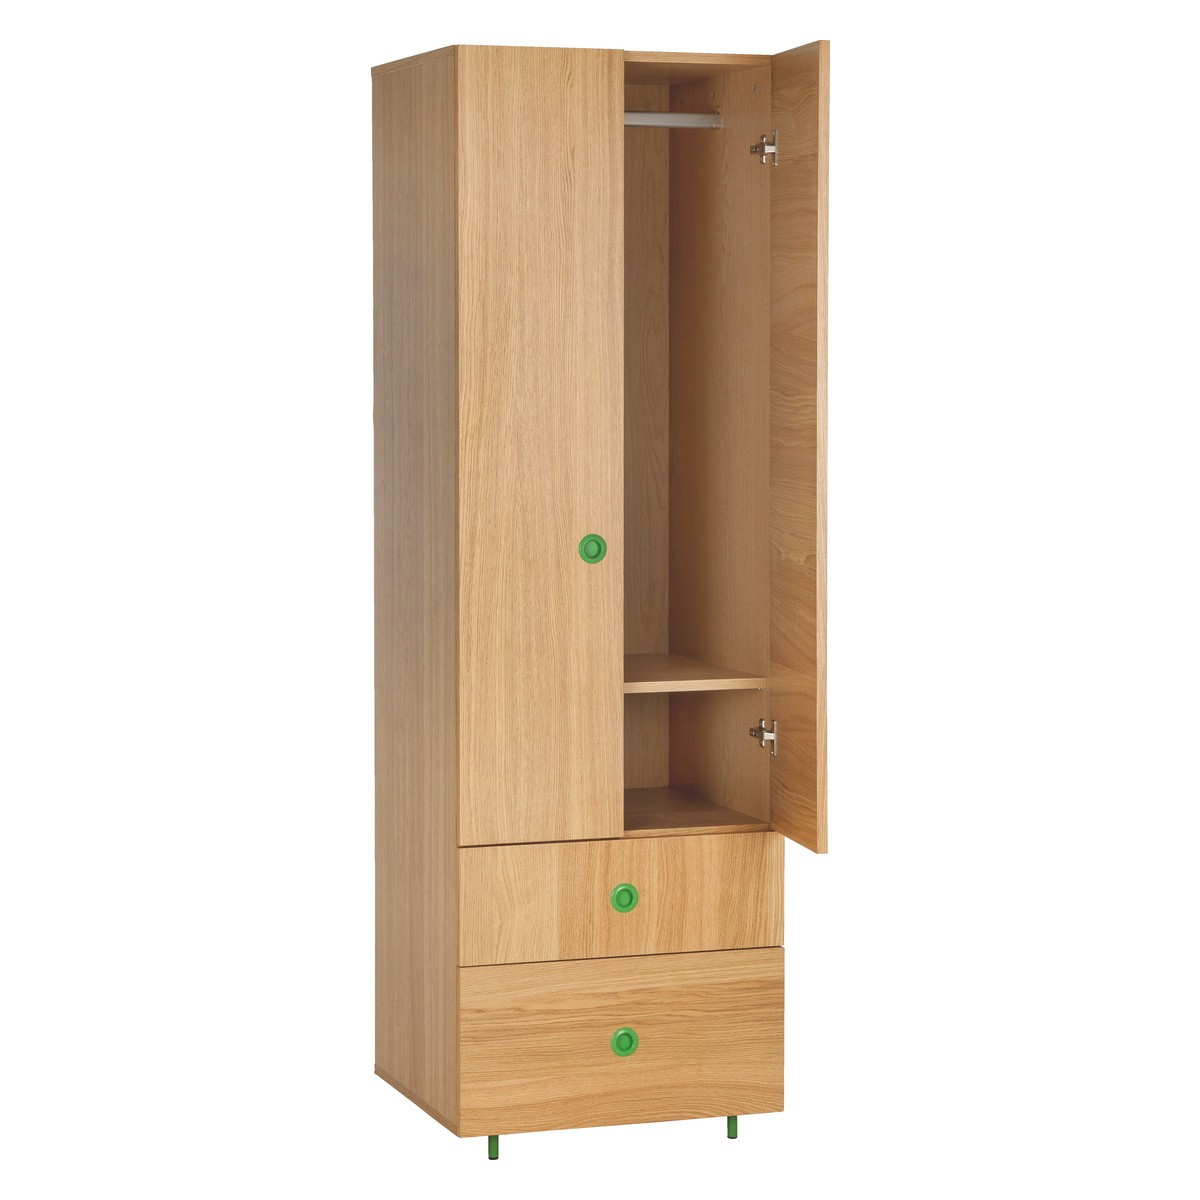 Popular ... POD Kidsu0027 oak double wardrobe with drawers double wardrobe with drawers